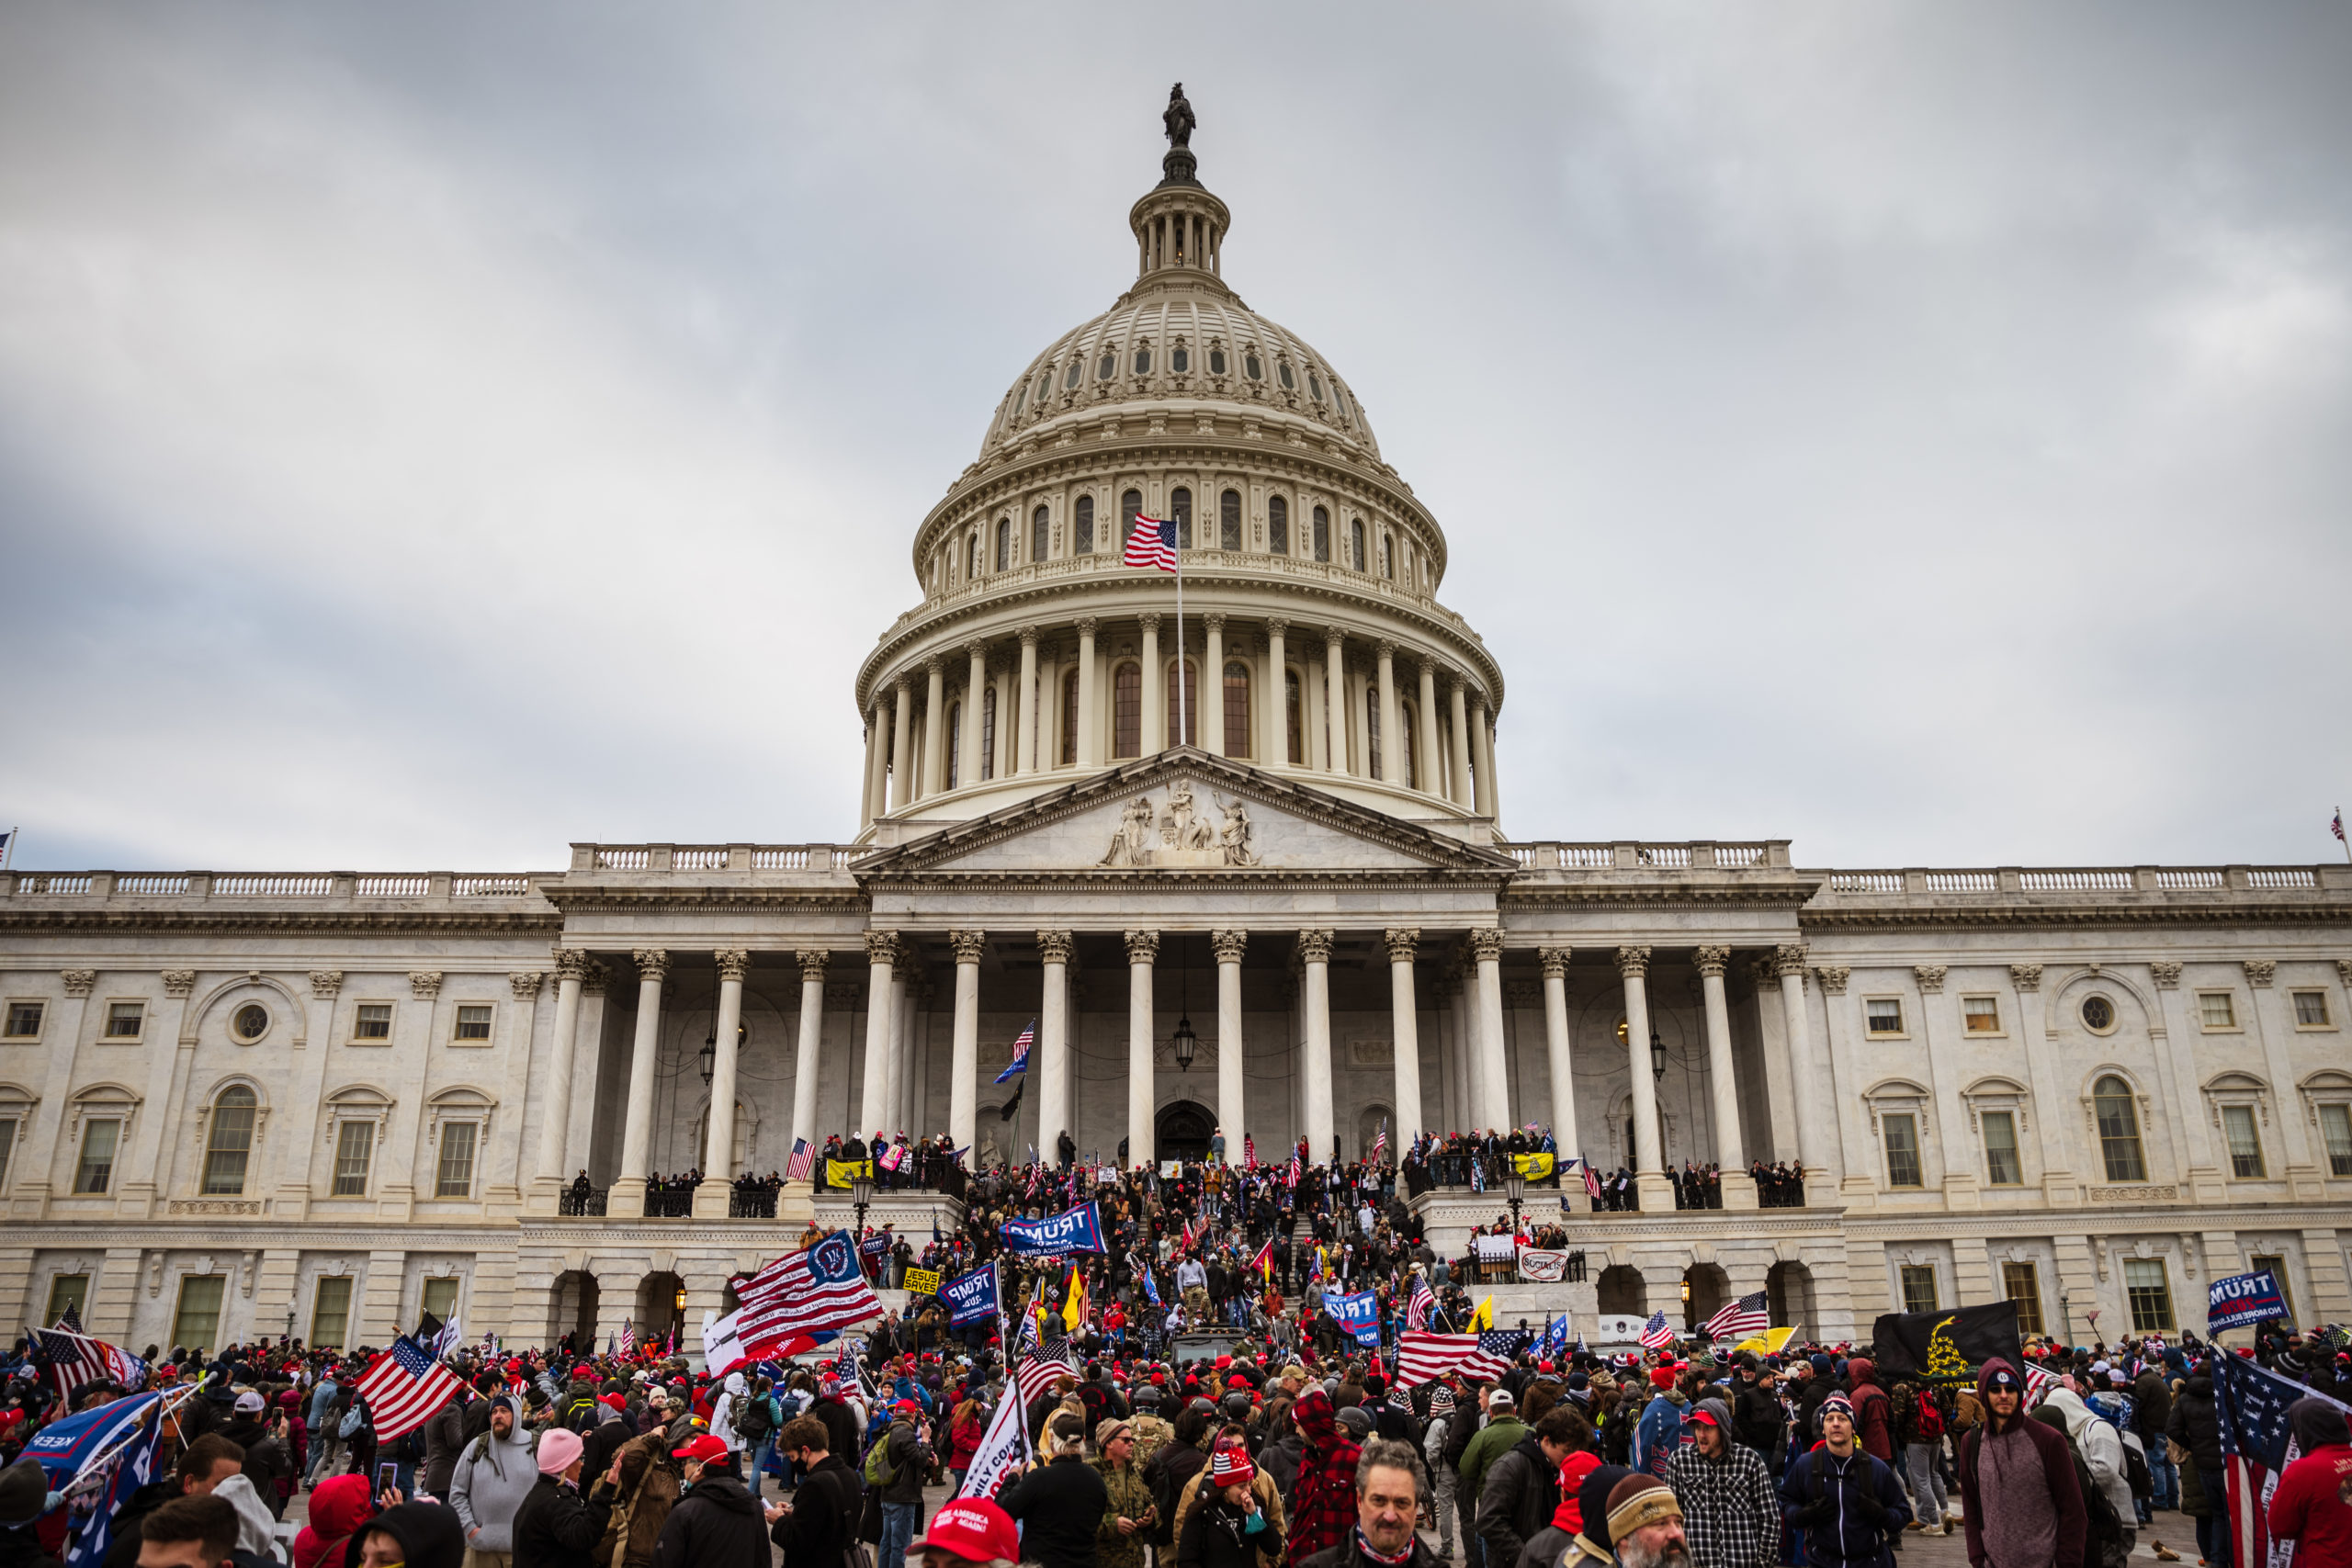 A large group of pro-Trump protesters stand on the East steps of the Capitol Building after storming its grounds on January 6, 2021 in Washington, DC. (Jon Cherry/Getty Images)